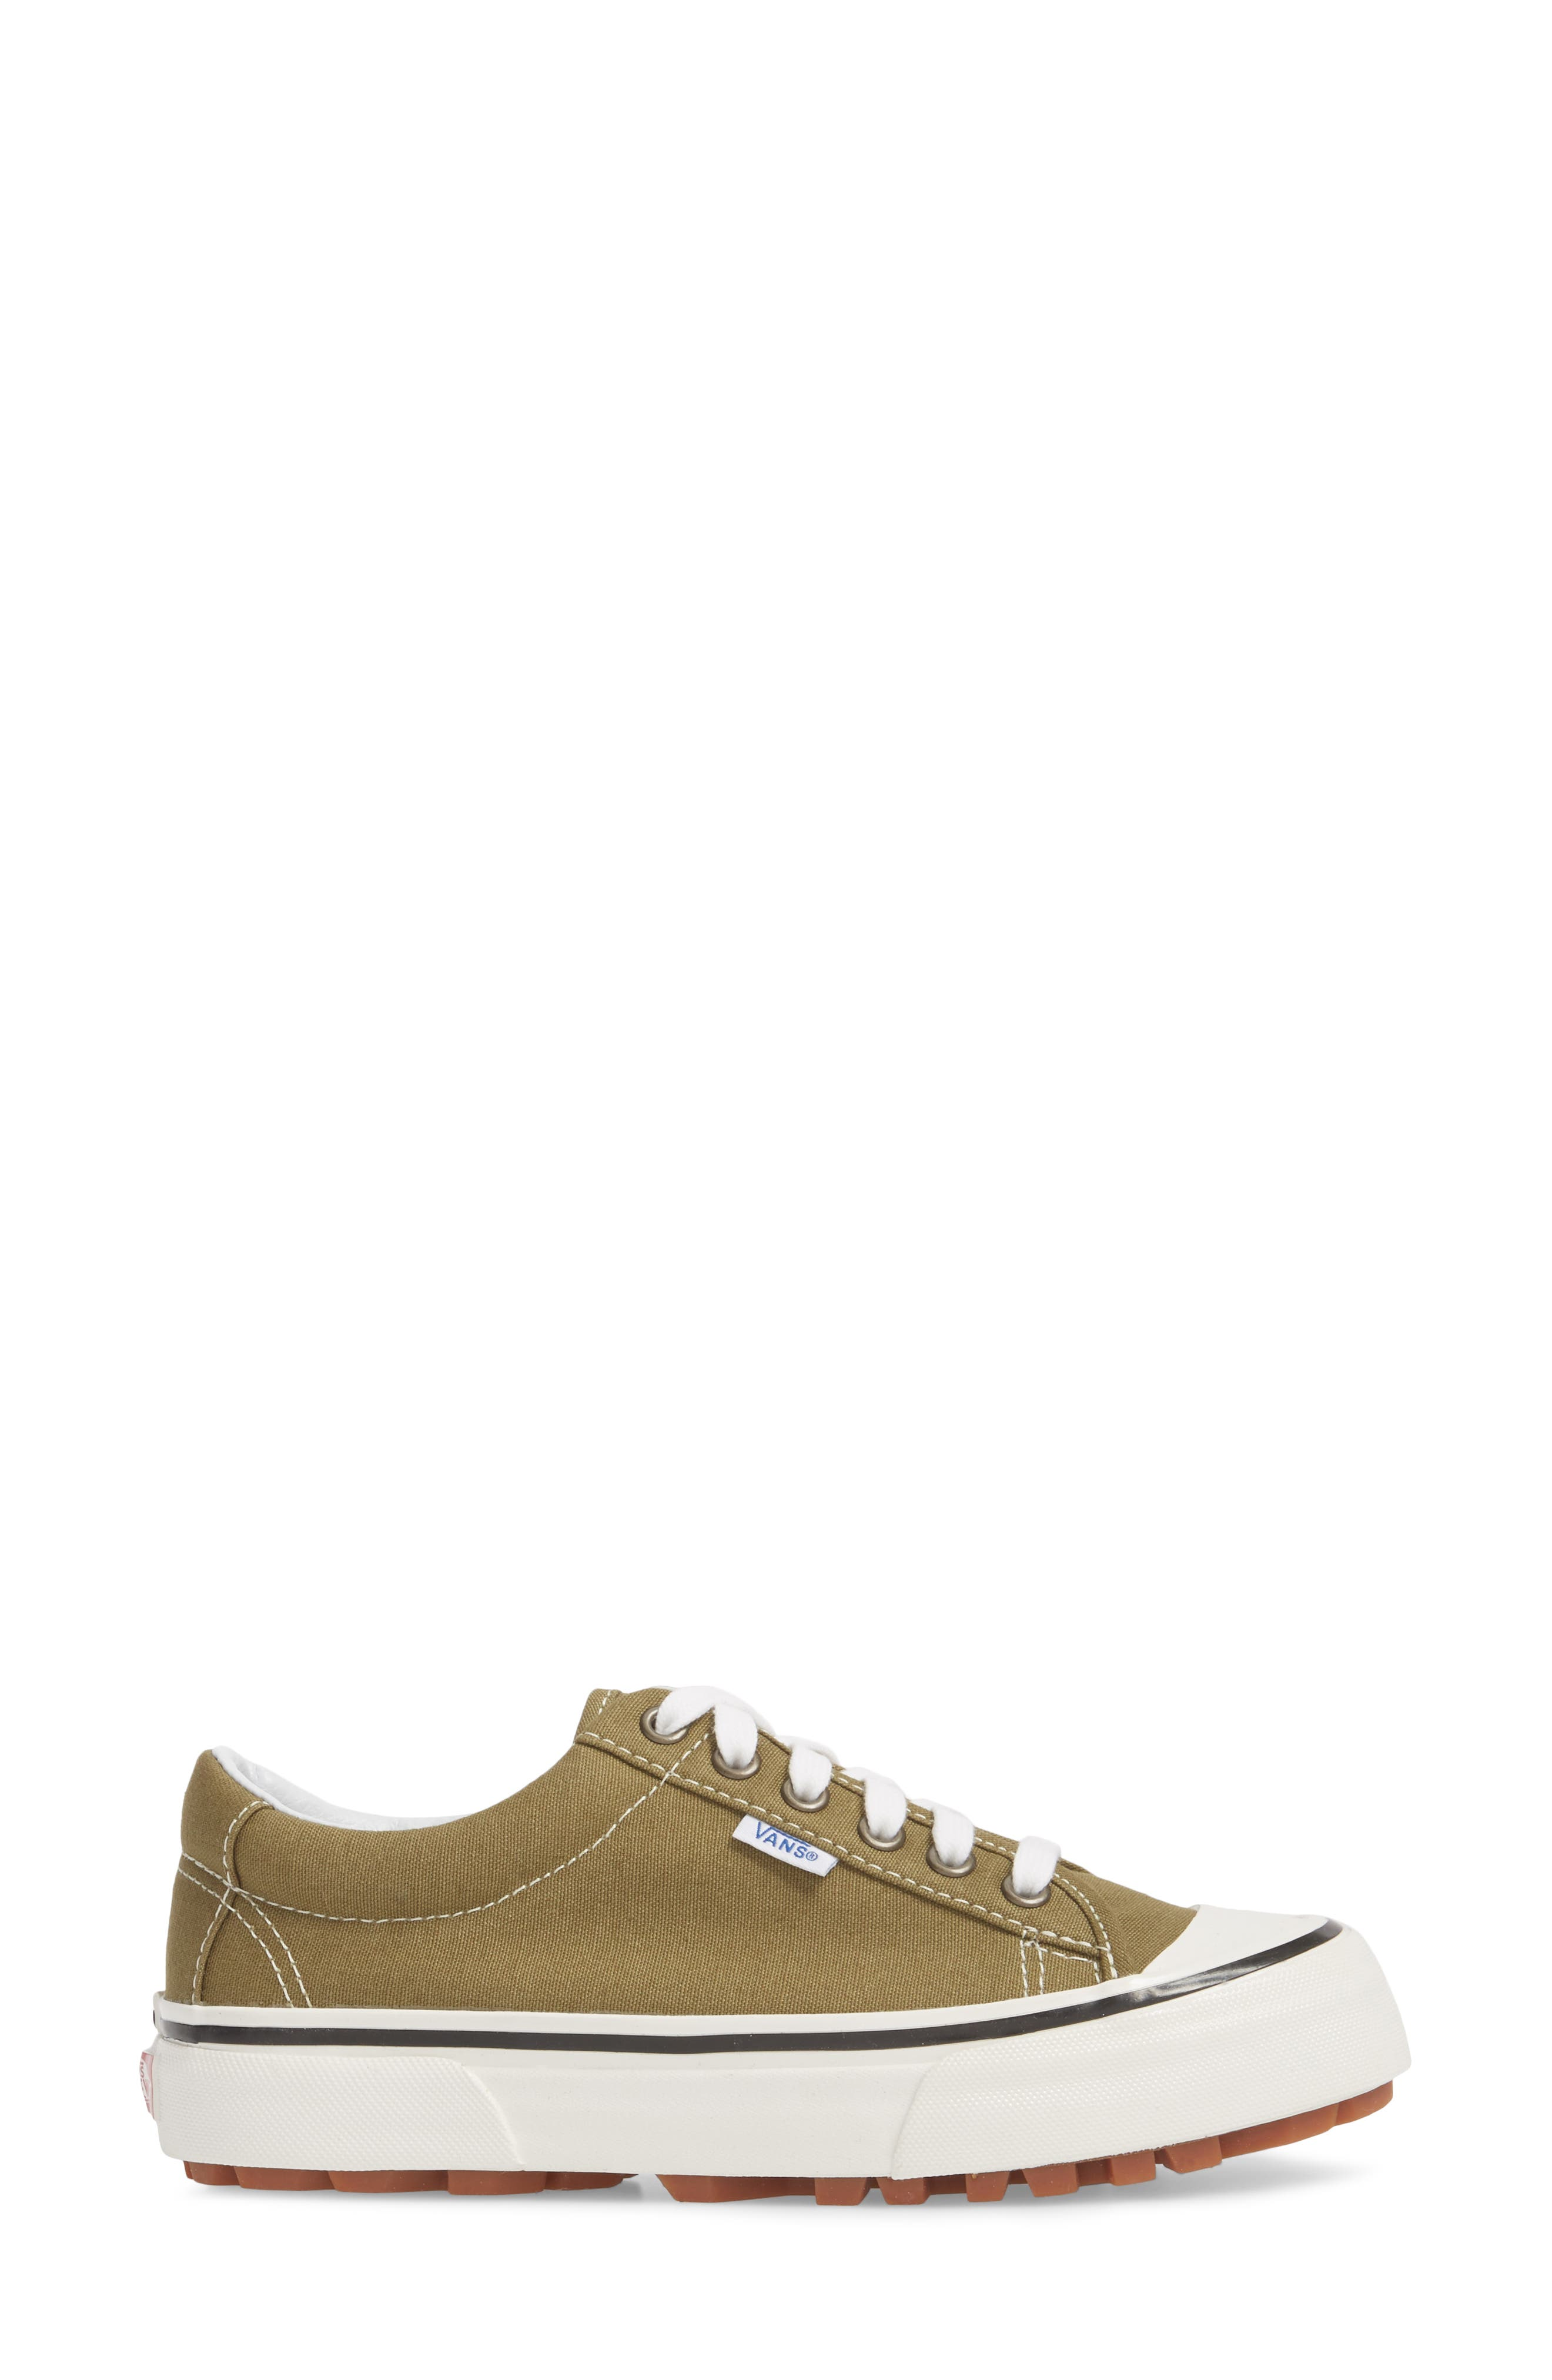 Anaheim Factory Style 29 DX Sneaker,                             Alternate thumbnail 3, color,                             Anaheim Factory Olive